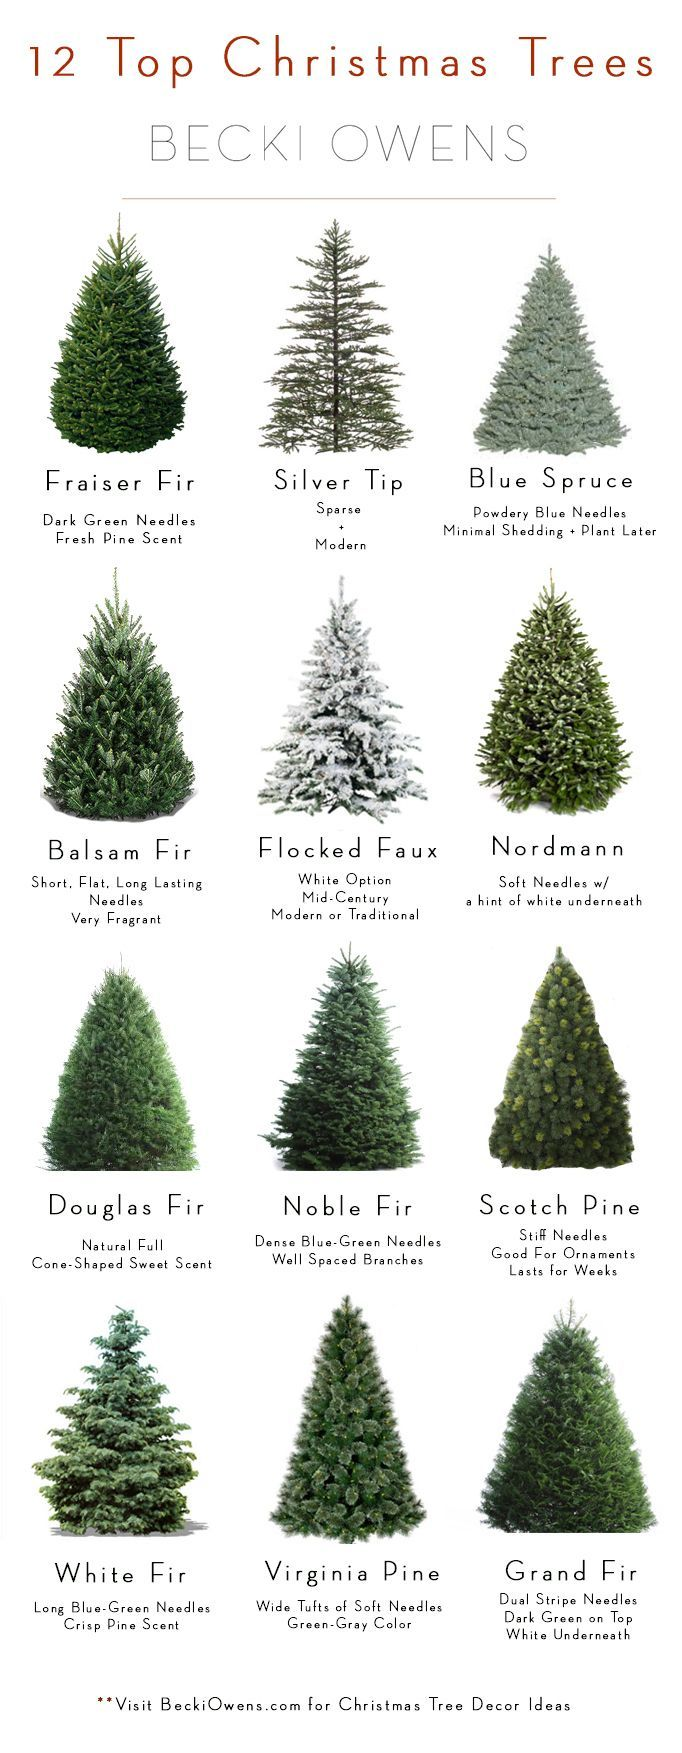 All About Christmas Trees Guide Decorating Becki Owens Christmas Tree Guide Types Of Christmas Trees Live Christmas Trees